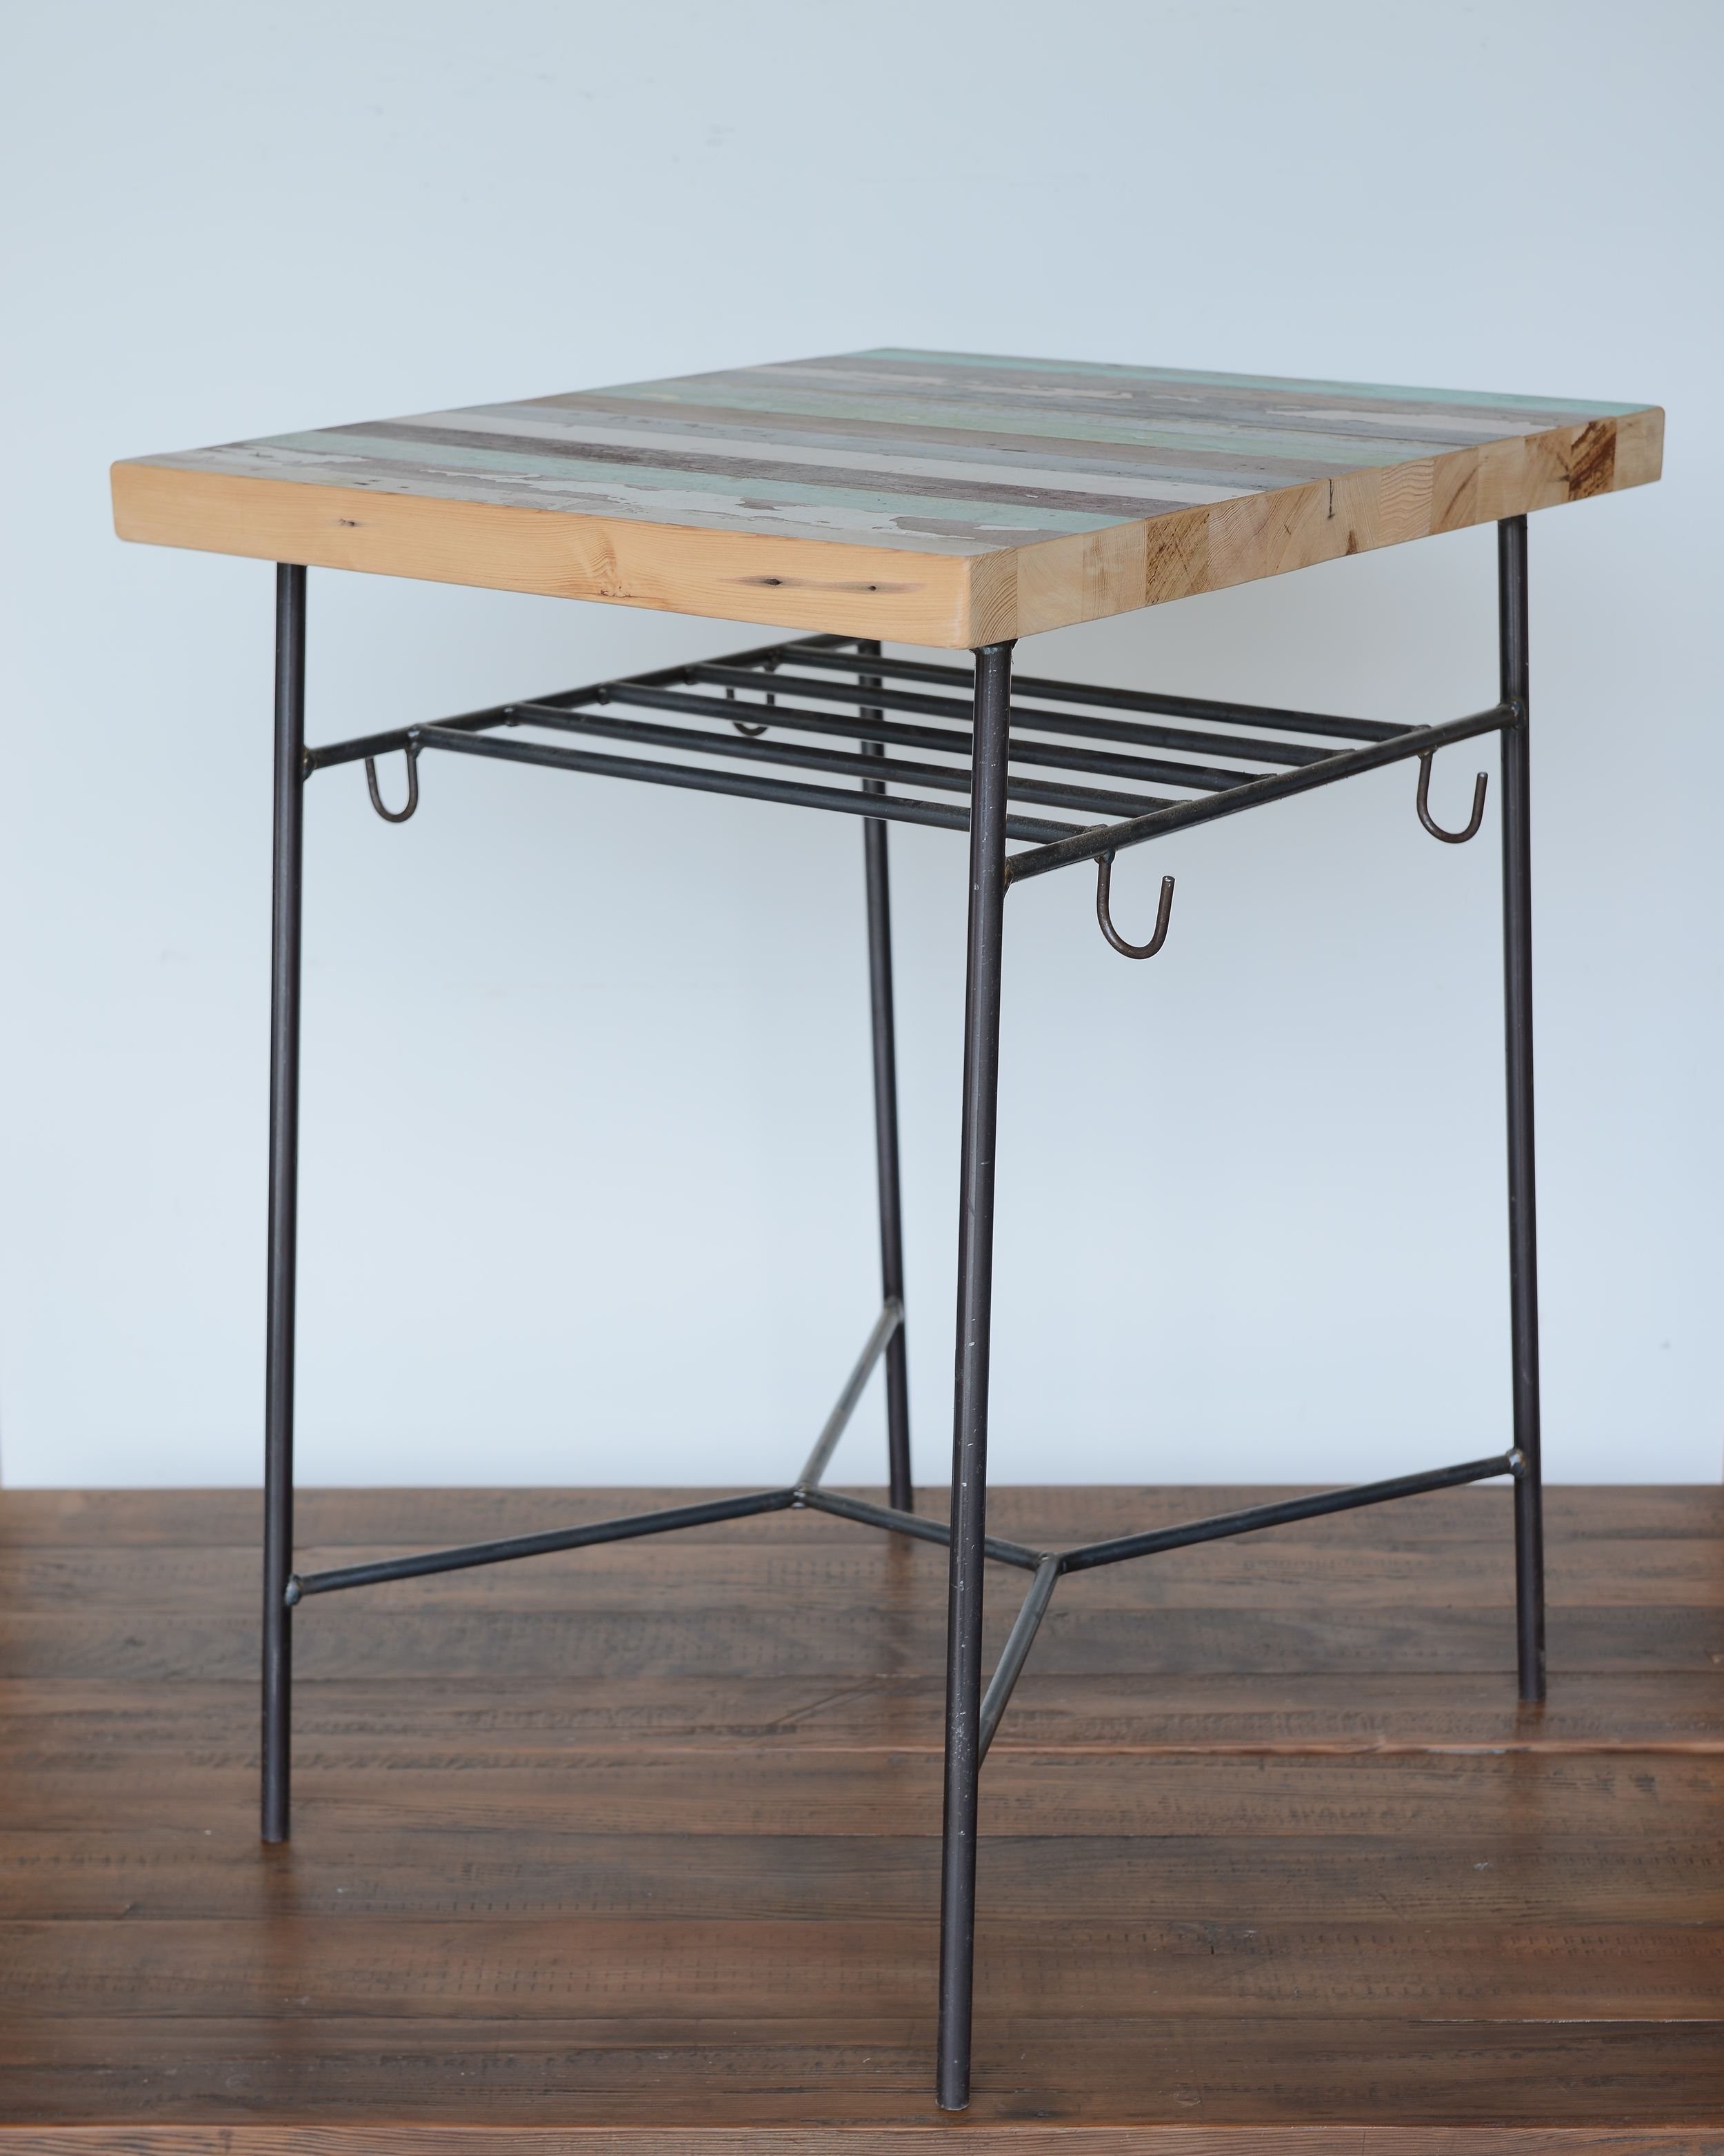 TS-I-06 Coffee table 實心黑鐵 x 栂木  NT 8,600 (未稅)